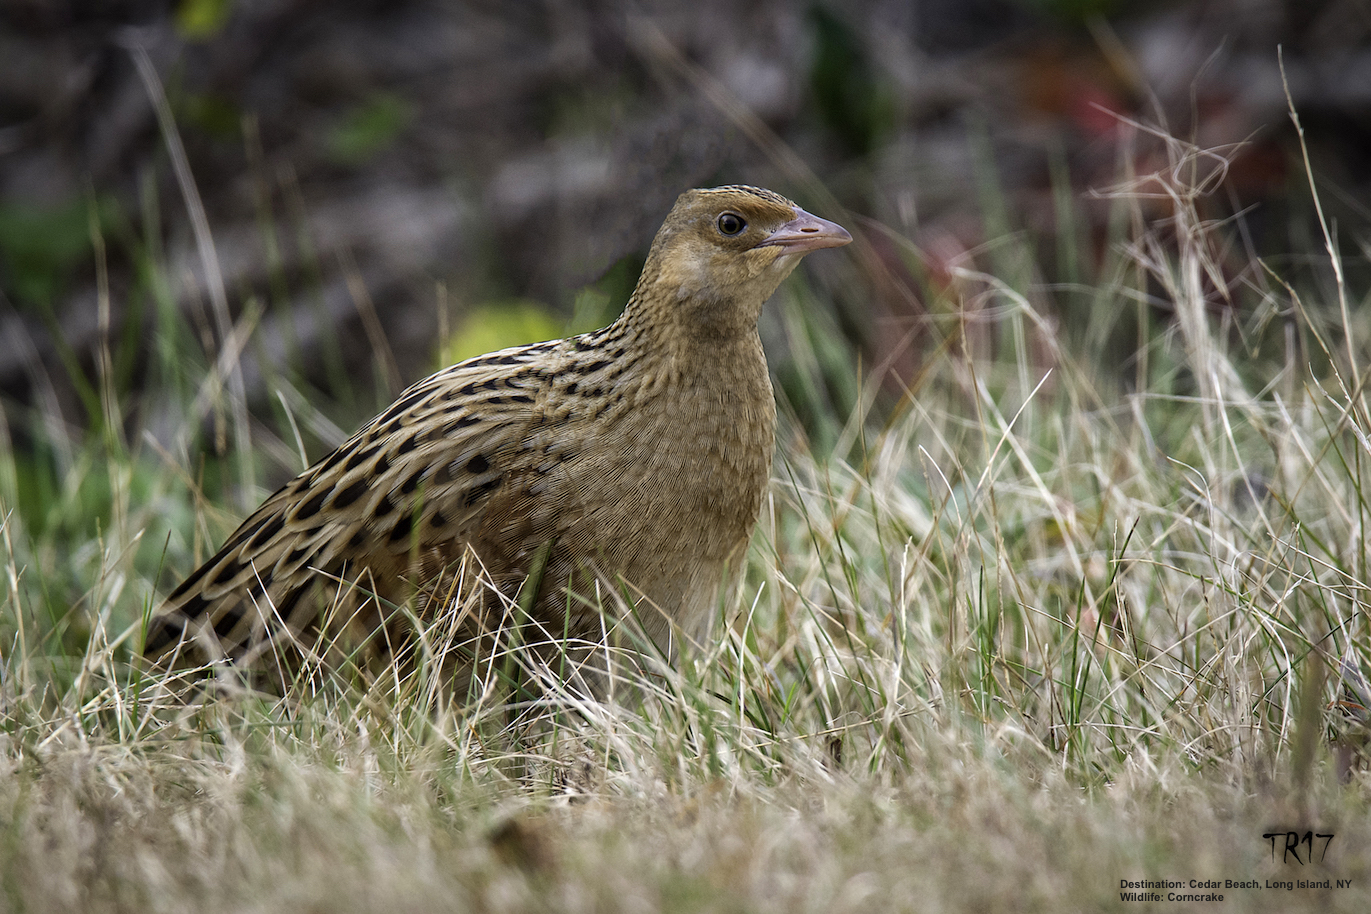 THE CORNCRAKE MADE GOOD USE OF ITS TIME AT CEDAR BEACH FILLING UP ON SEEDS AND EARTH WORMS IN THE TALL GRASS ON OCEAN PARKWAY'S SHOULDER, UNFORTUNATELY HE WAS STRUCK BY A CAR AT NIGHT AND KILLED. REST IN PEACE LITTLE TRAVELER. IMAGE: TOM REICHERT.